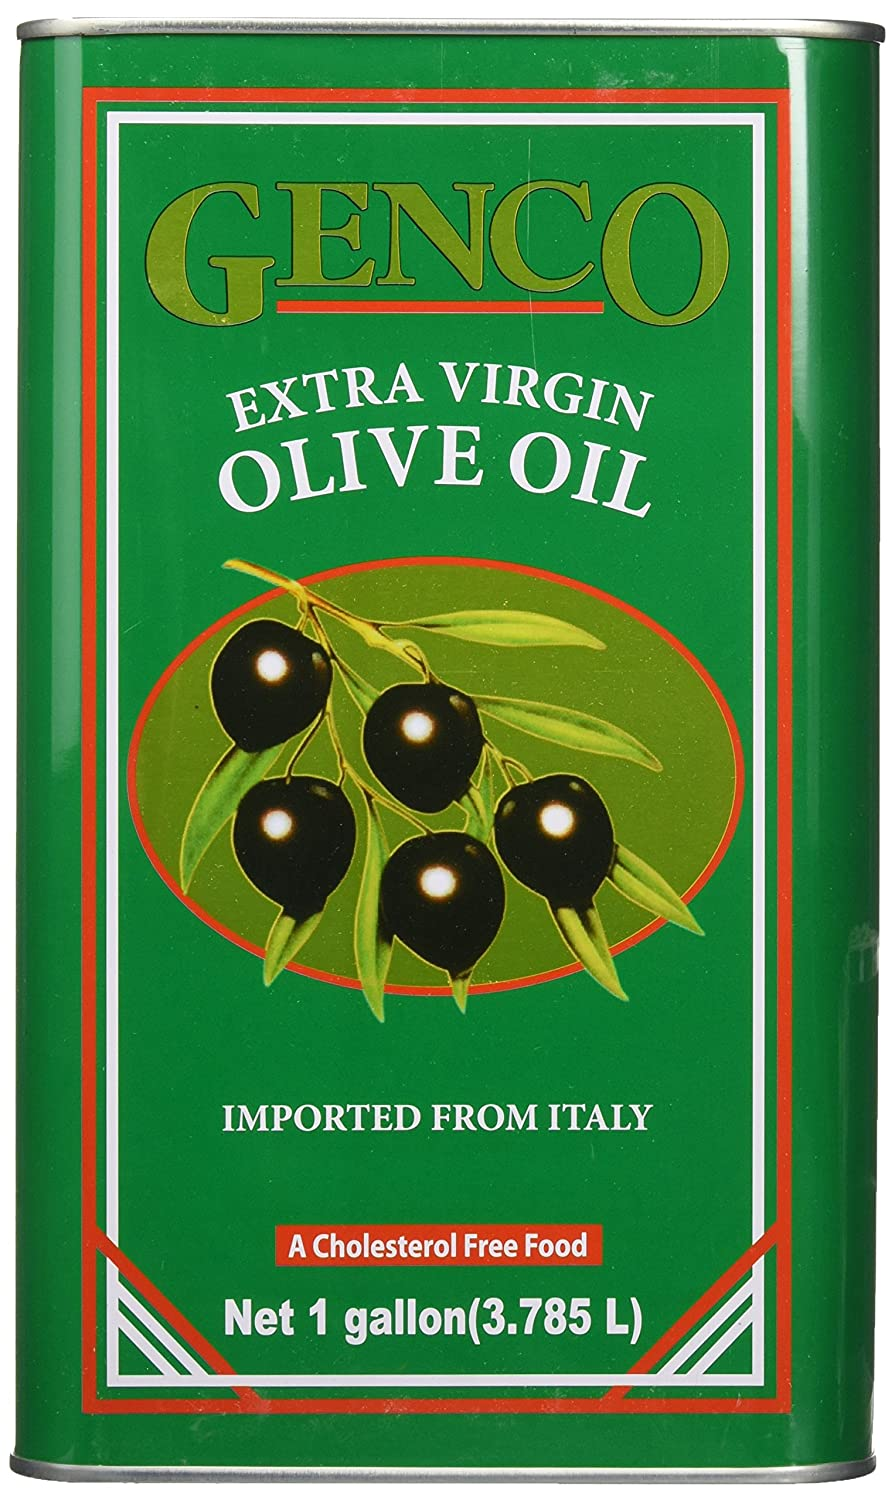 amazon com genco extra virgin olive oil 1 gallon olive oil